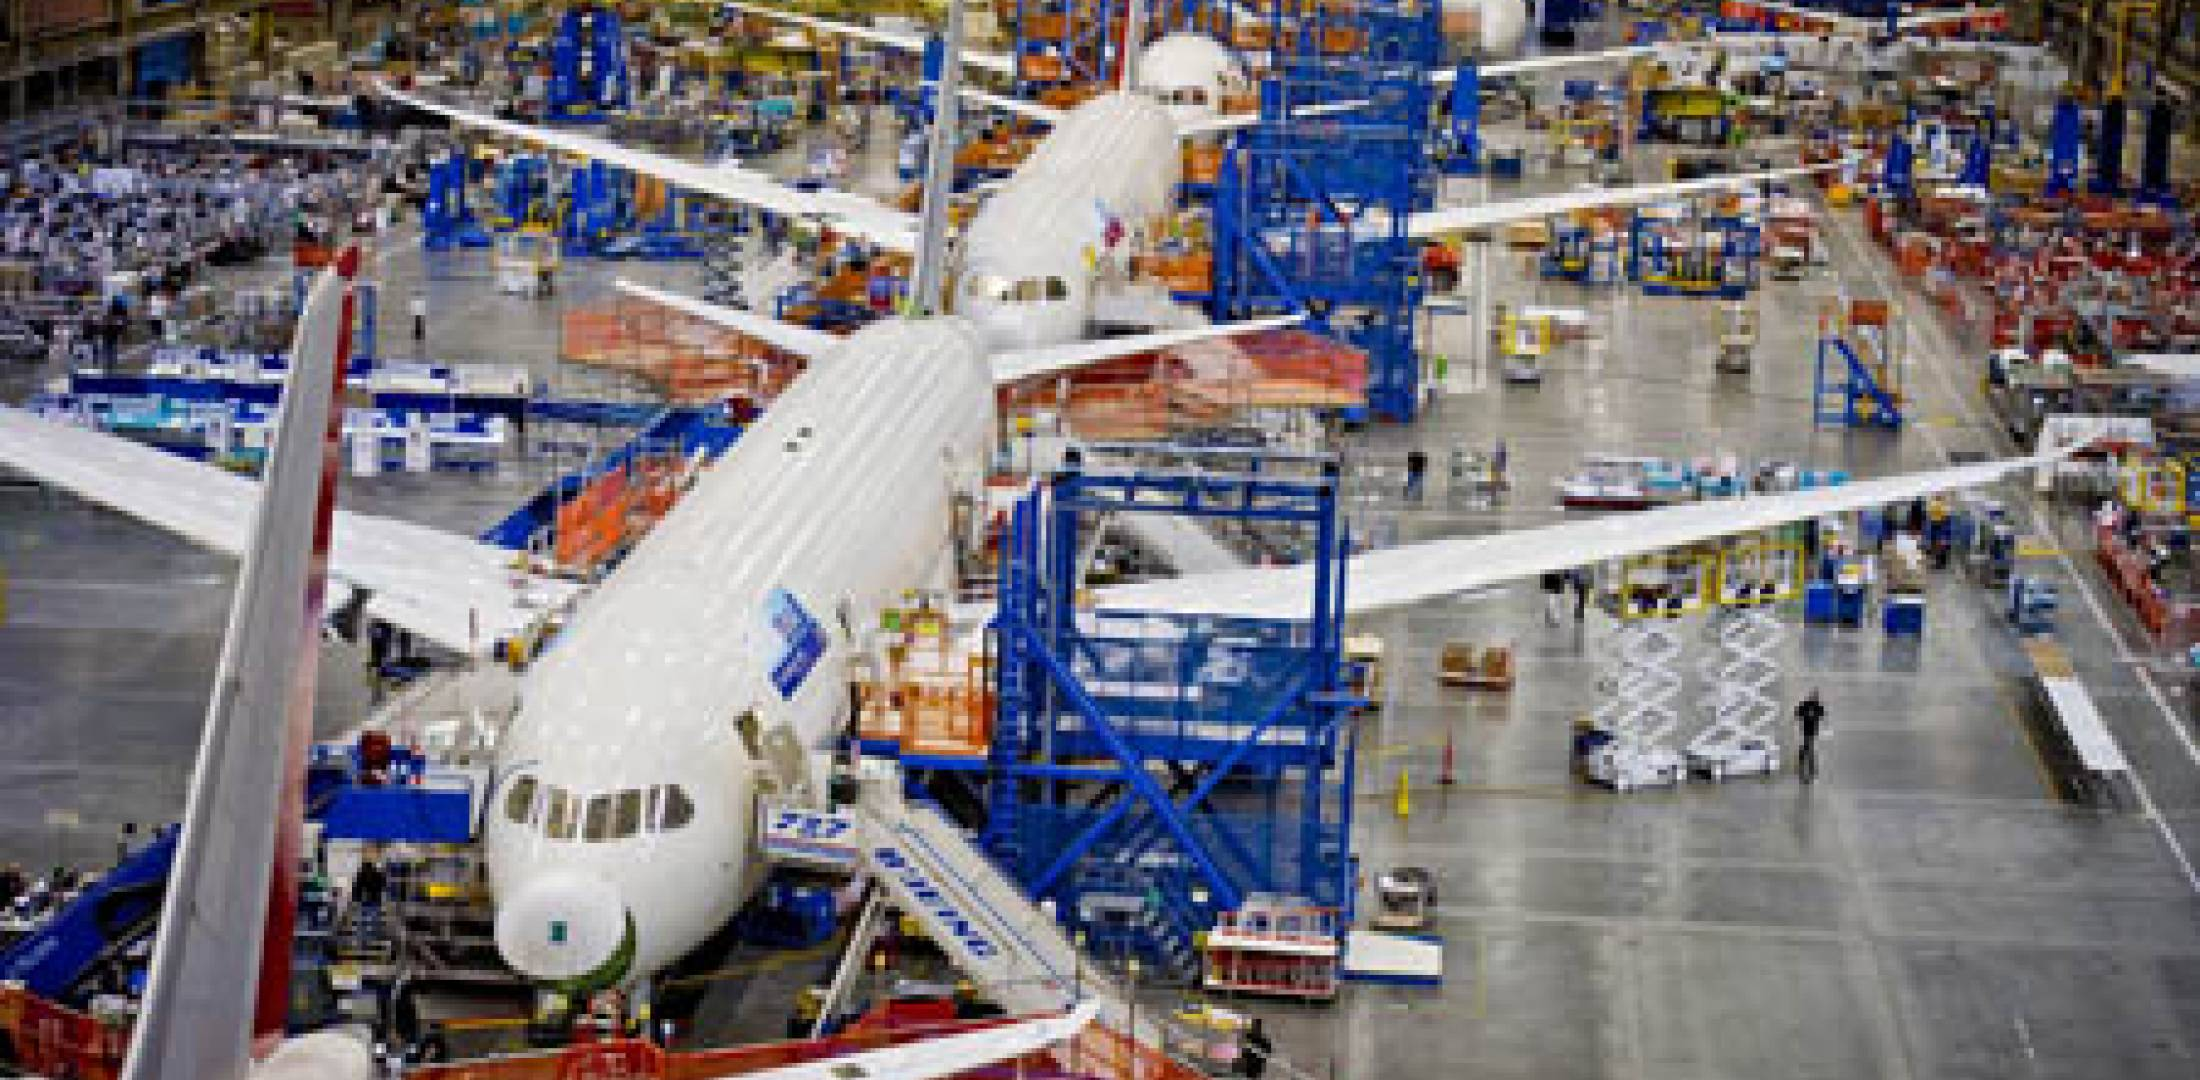 Boeing 787 assembly line